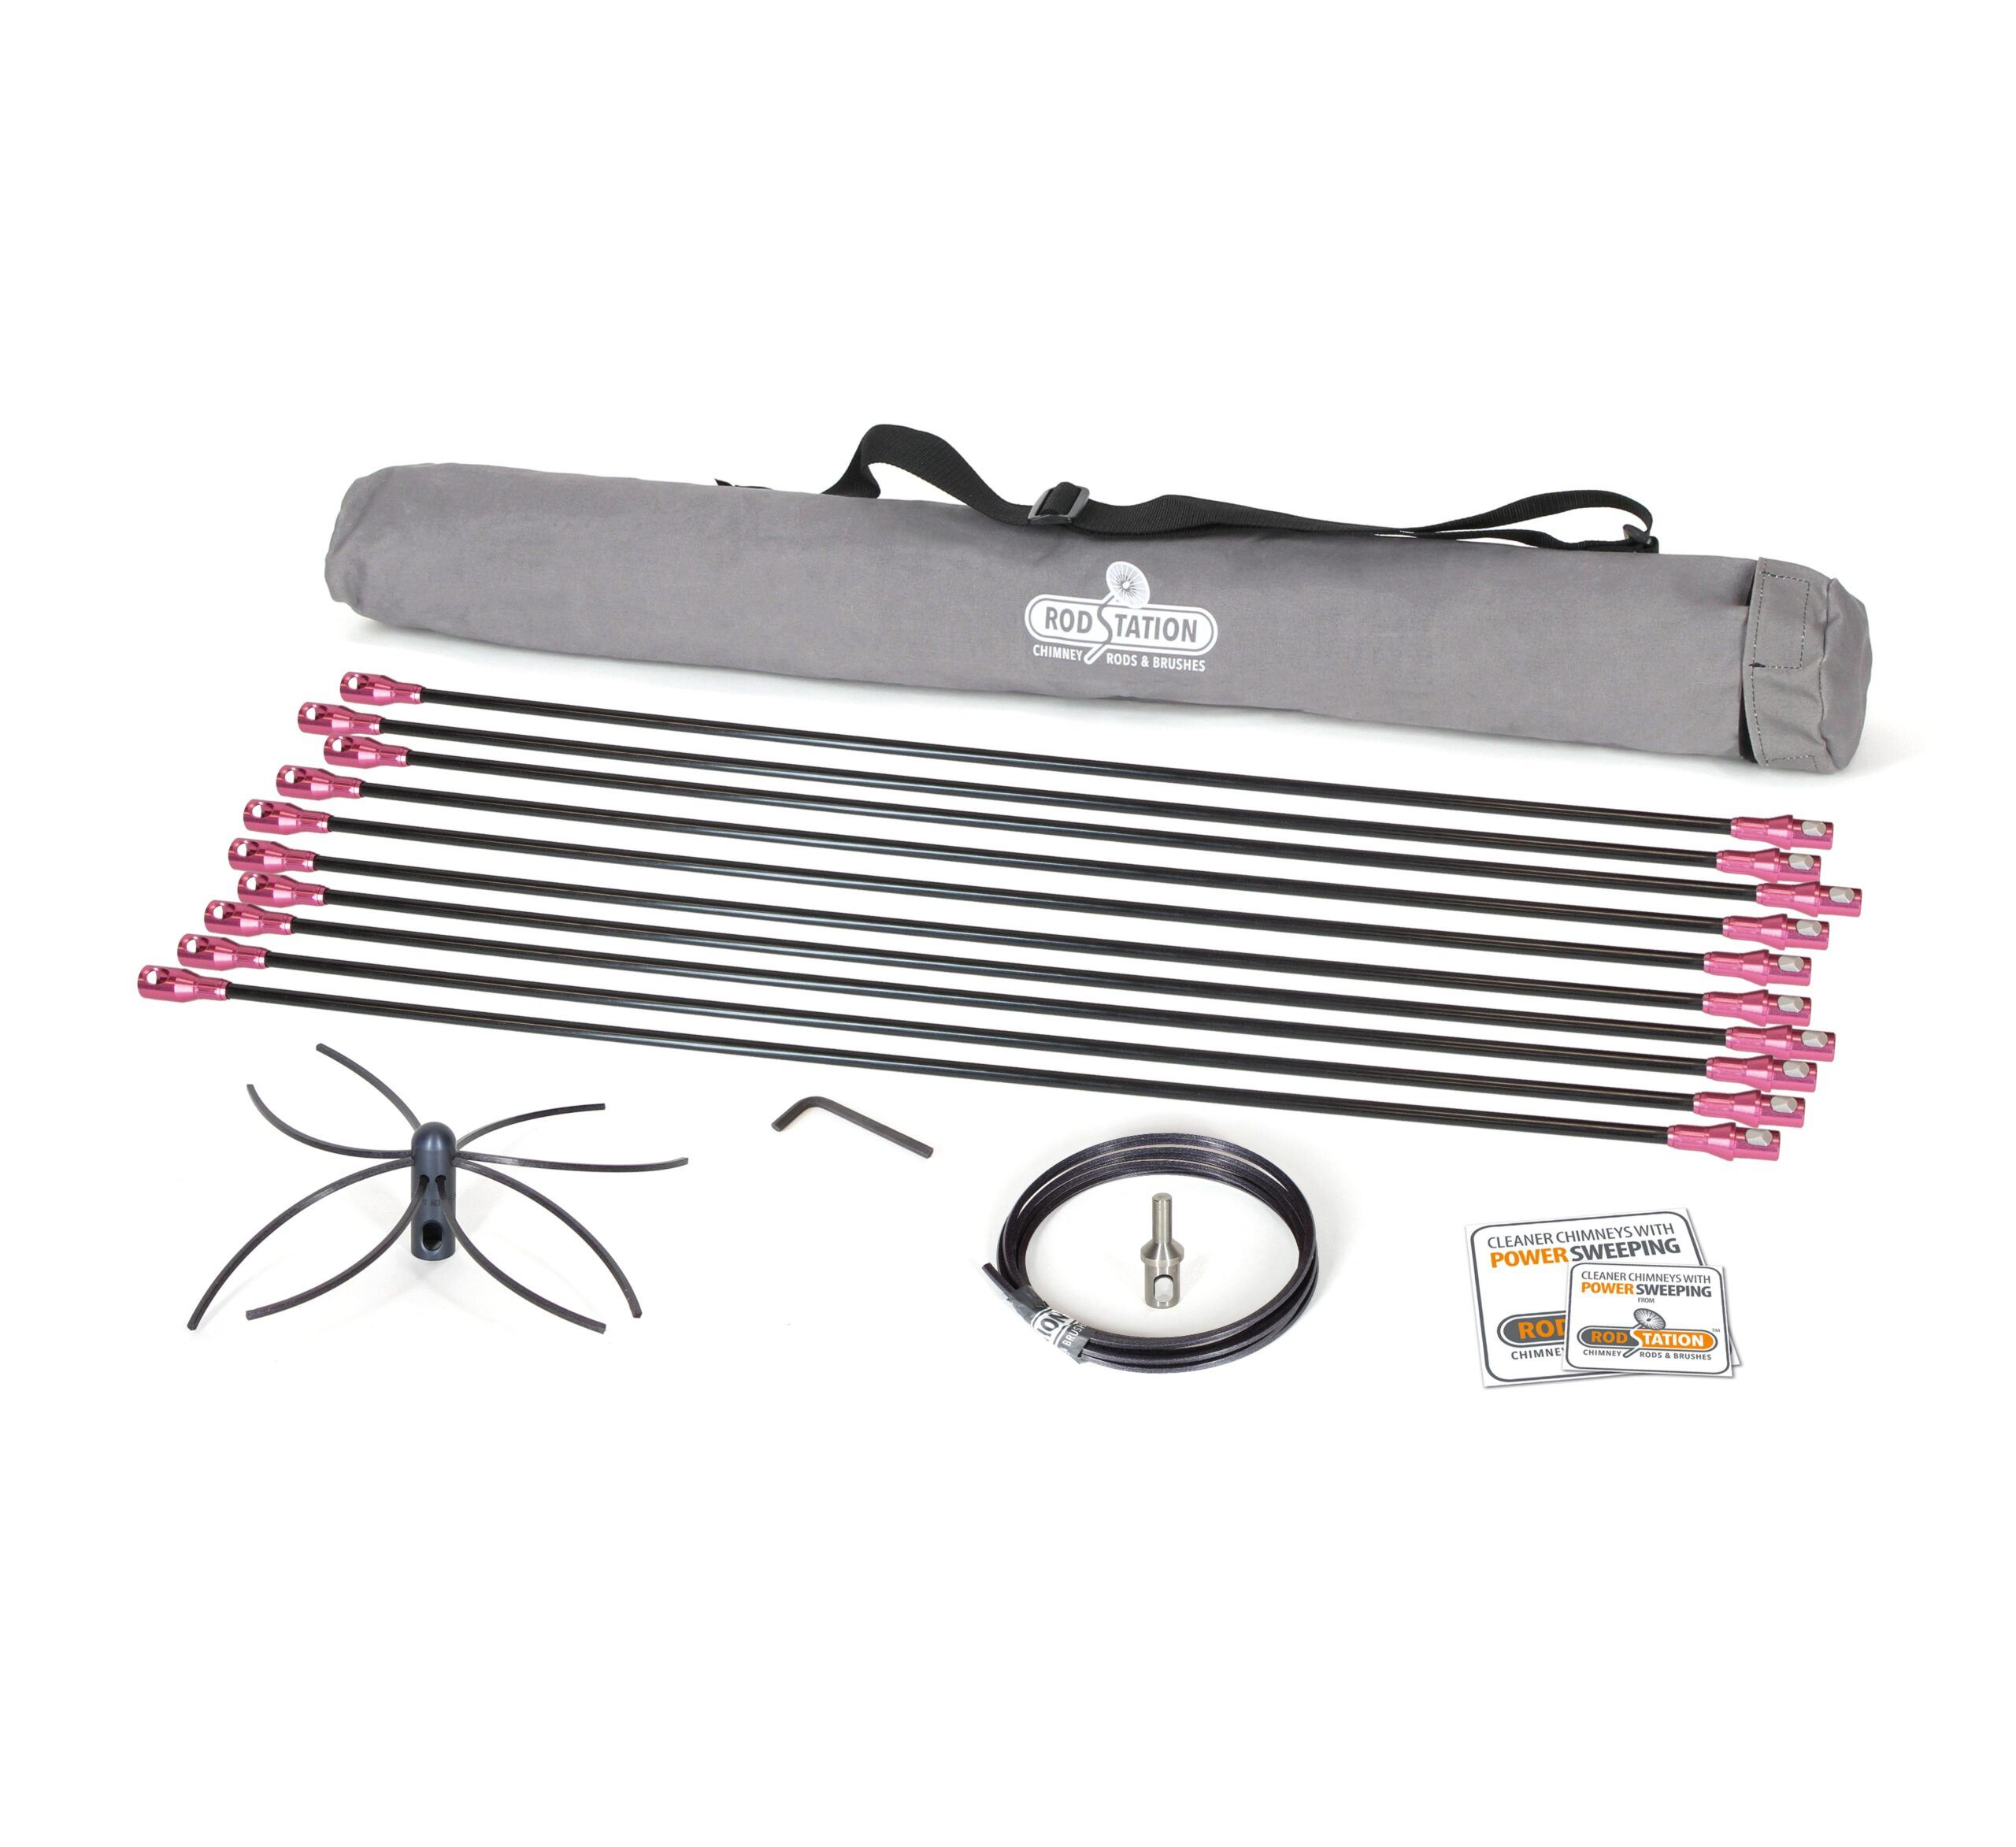 Extra flexible liner power sweeping kit